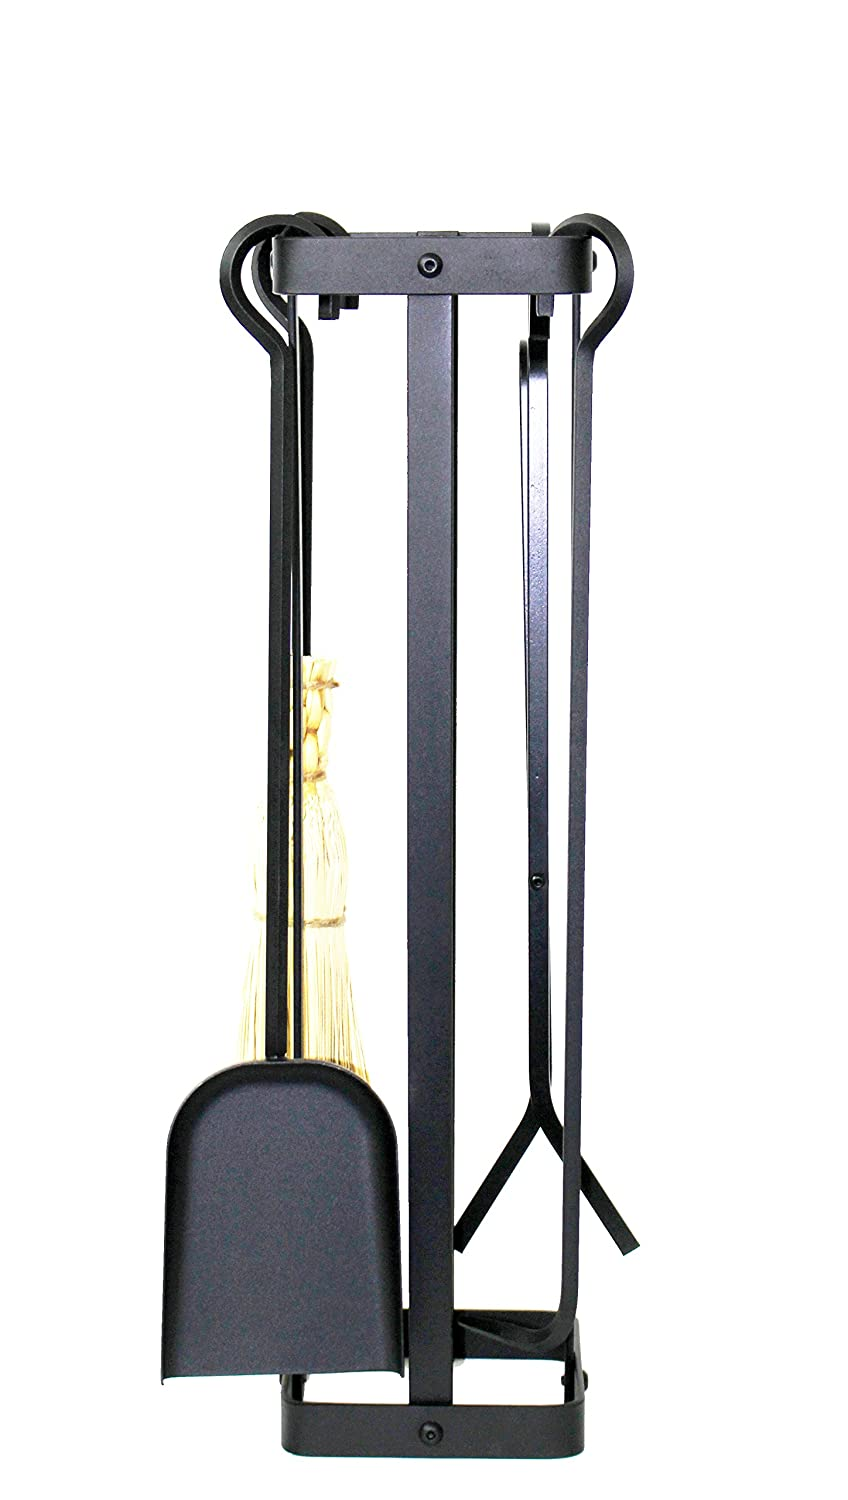 Enclume Square Fireplace Tool Set, Hammered Steel FPTS21 HS